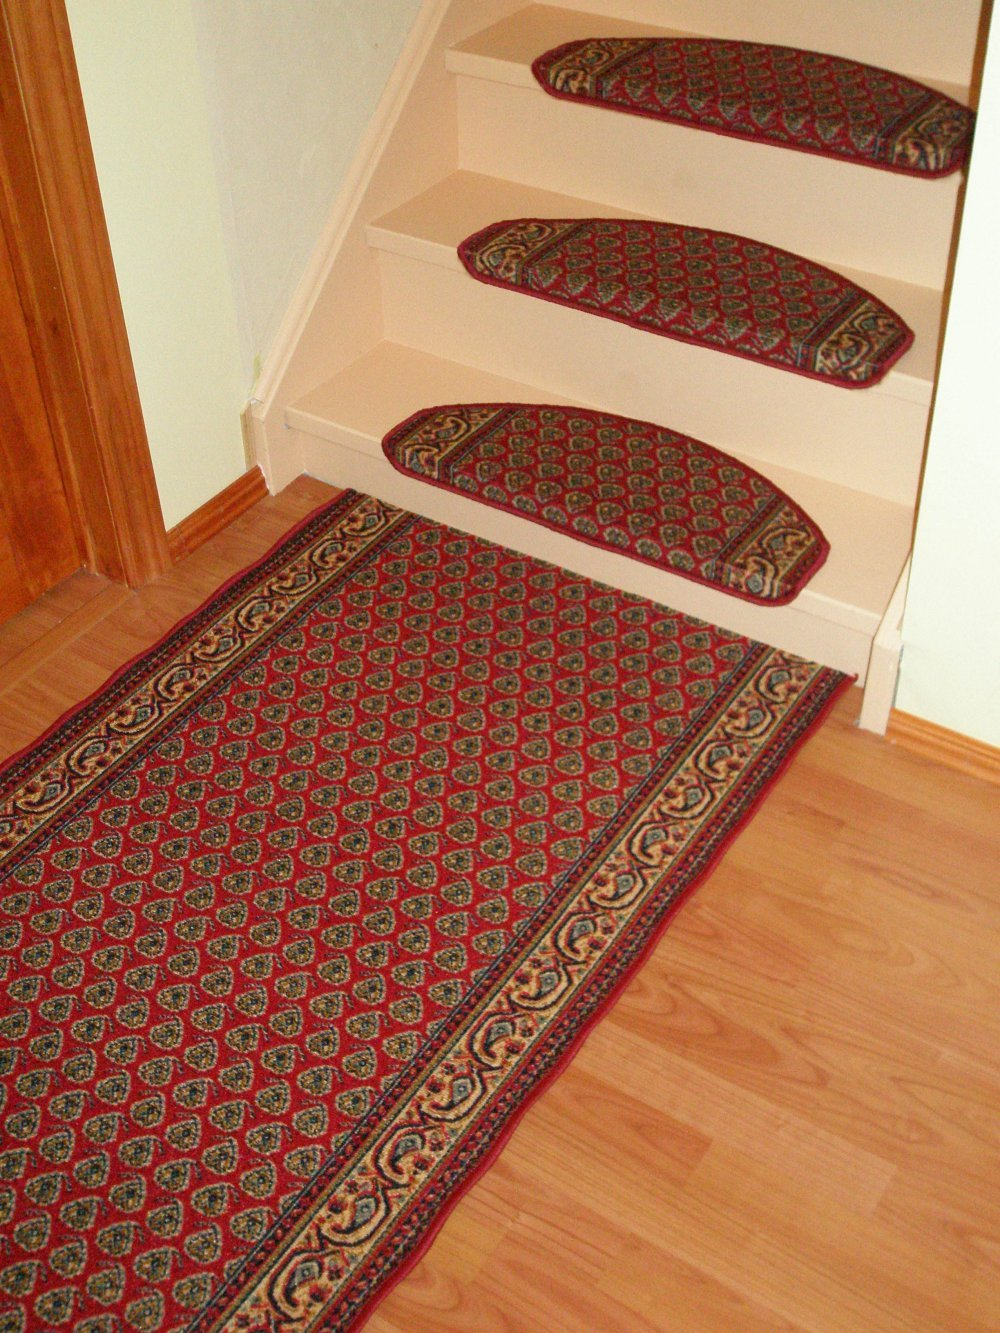 High Quality Carpet Stair Mats Made In Europe Buy In Canada